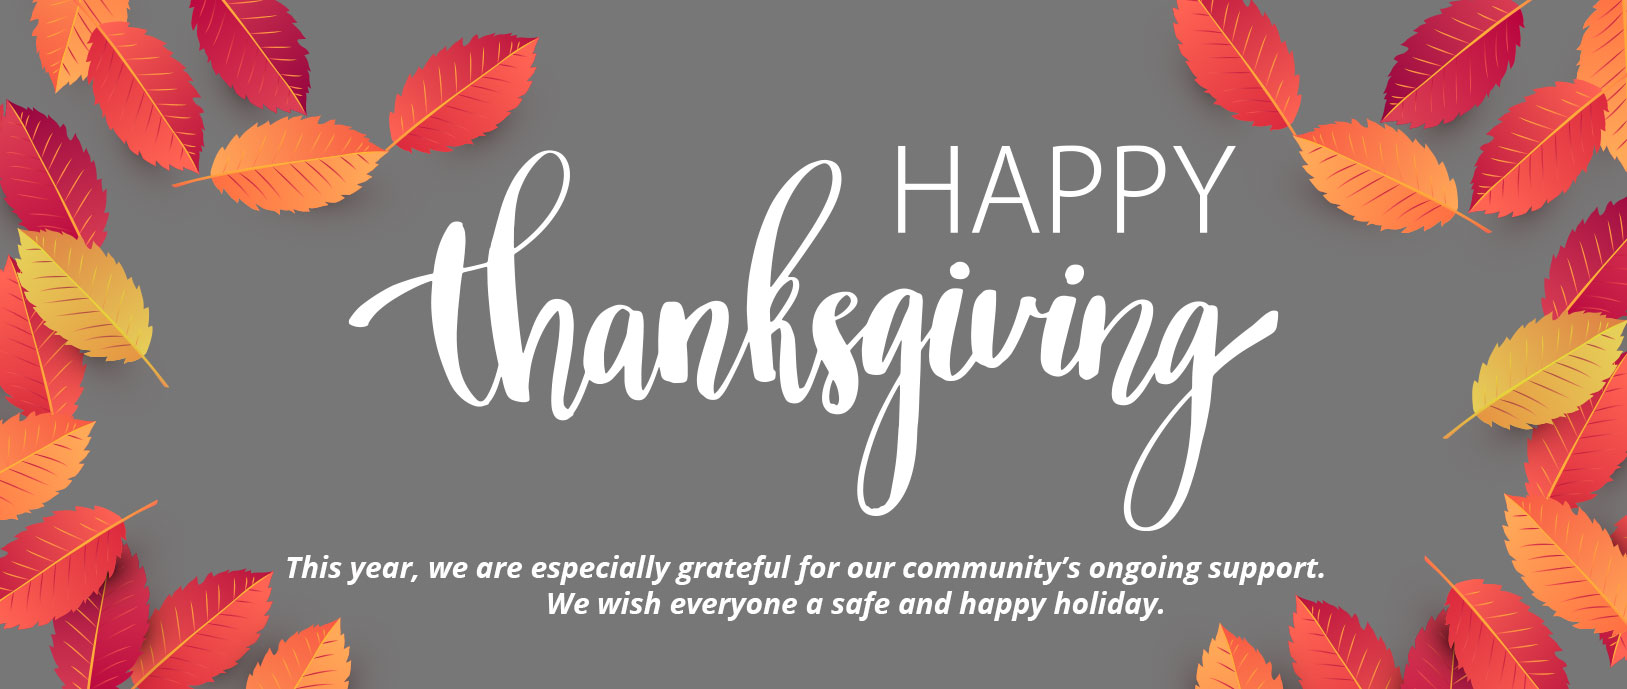 Happy Thanksgiving  This year, we are essentially grateful for our community's ongoing support.   We wish everyone a safe and happy holiday.